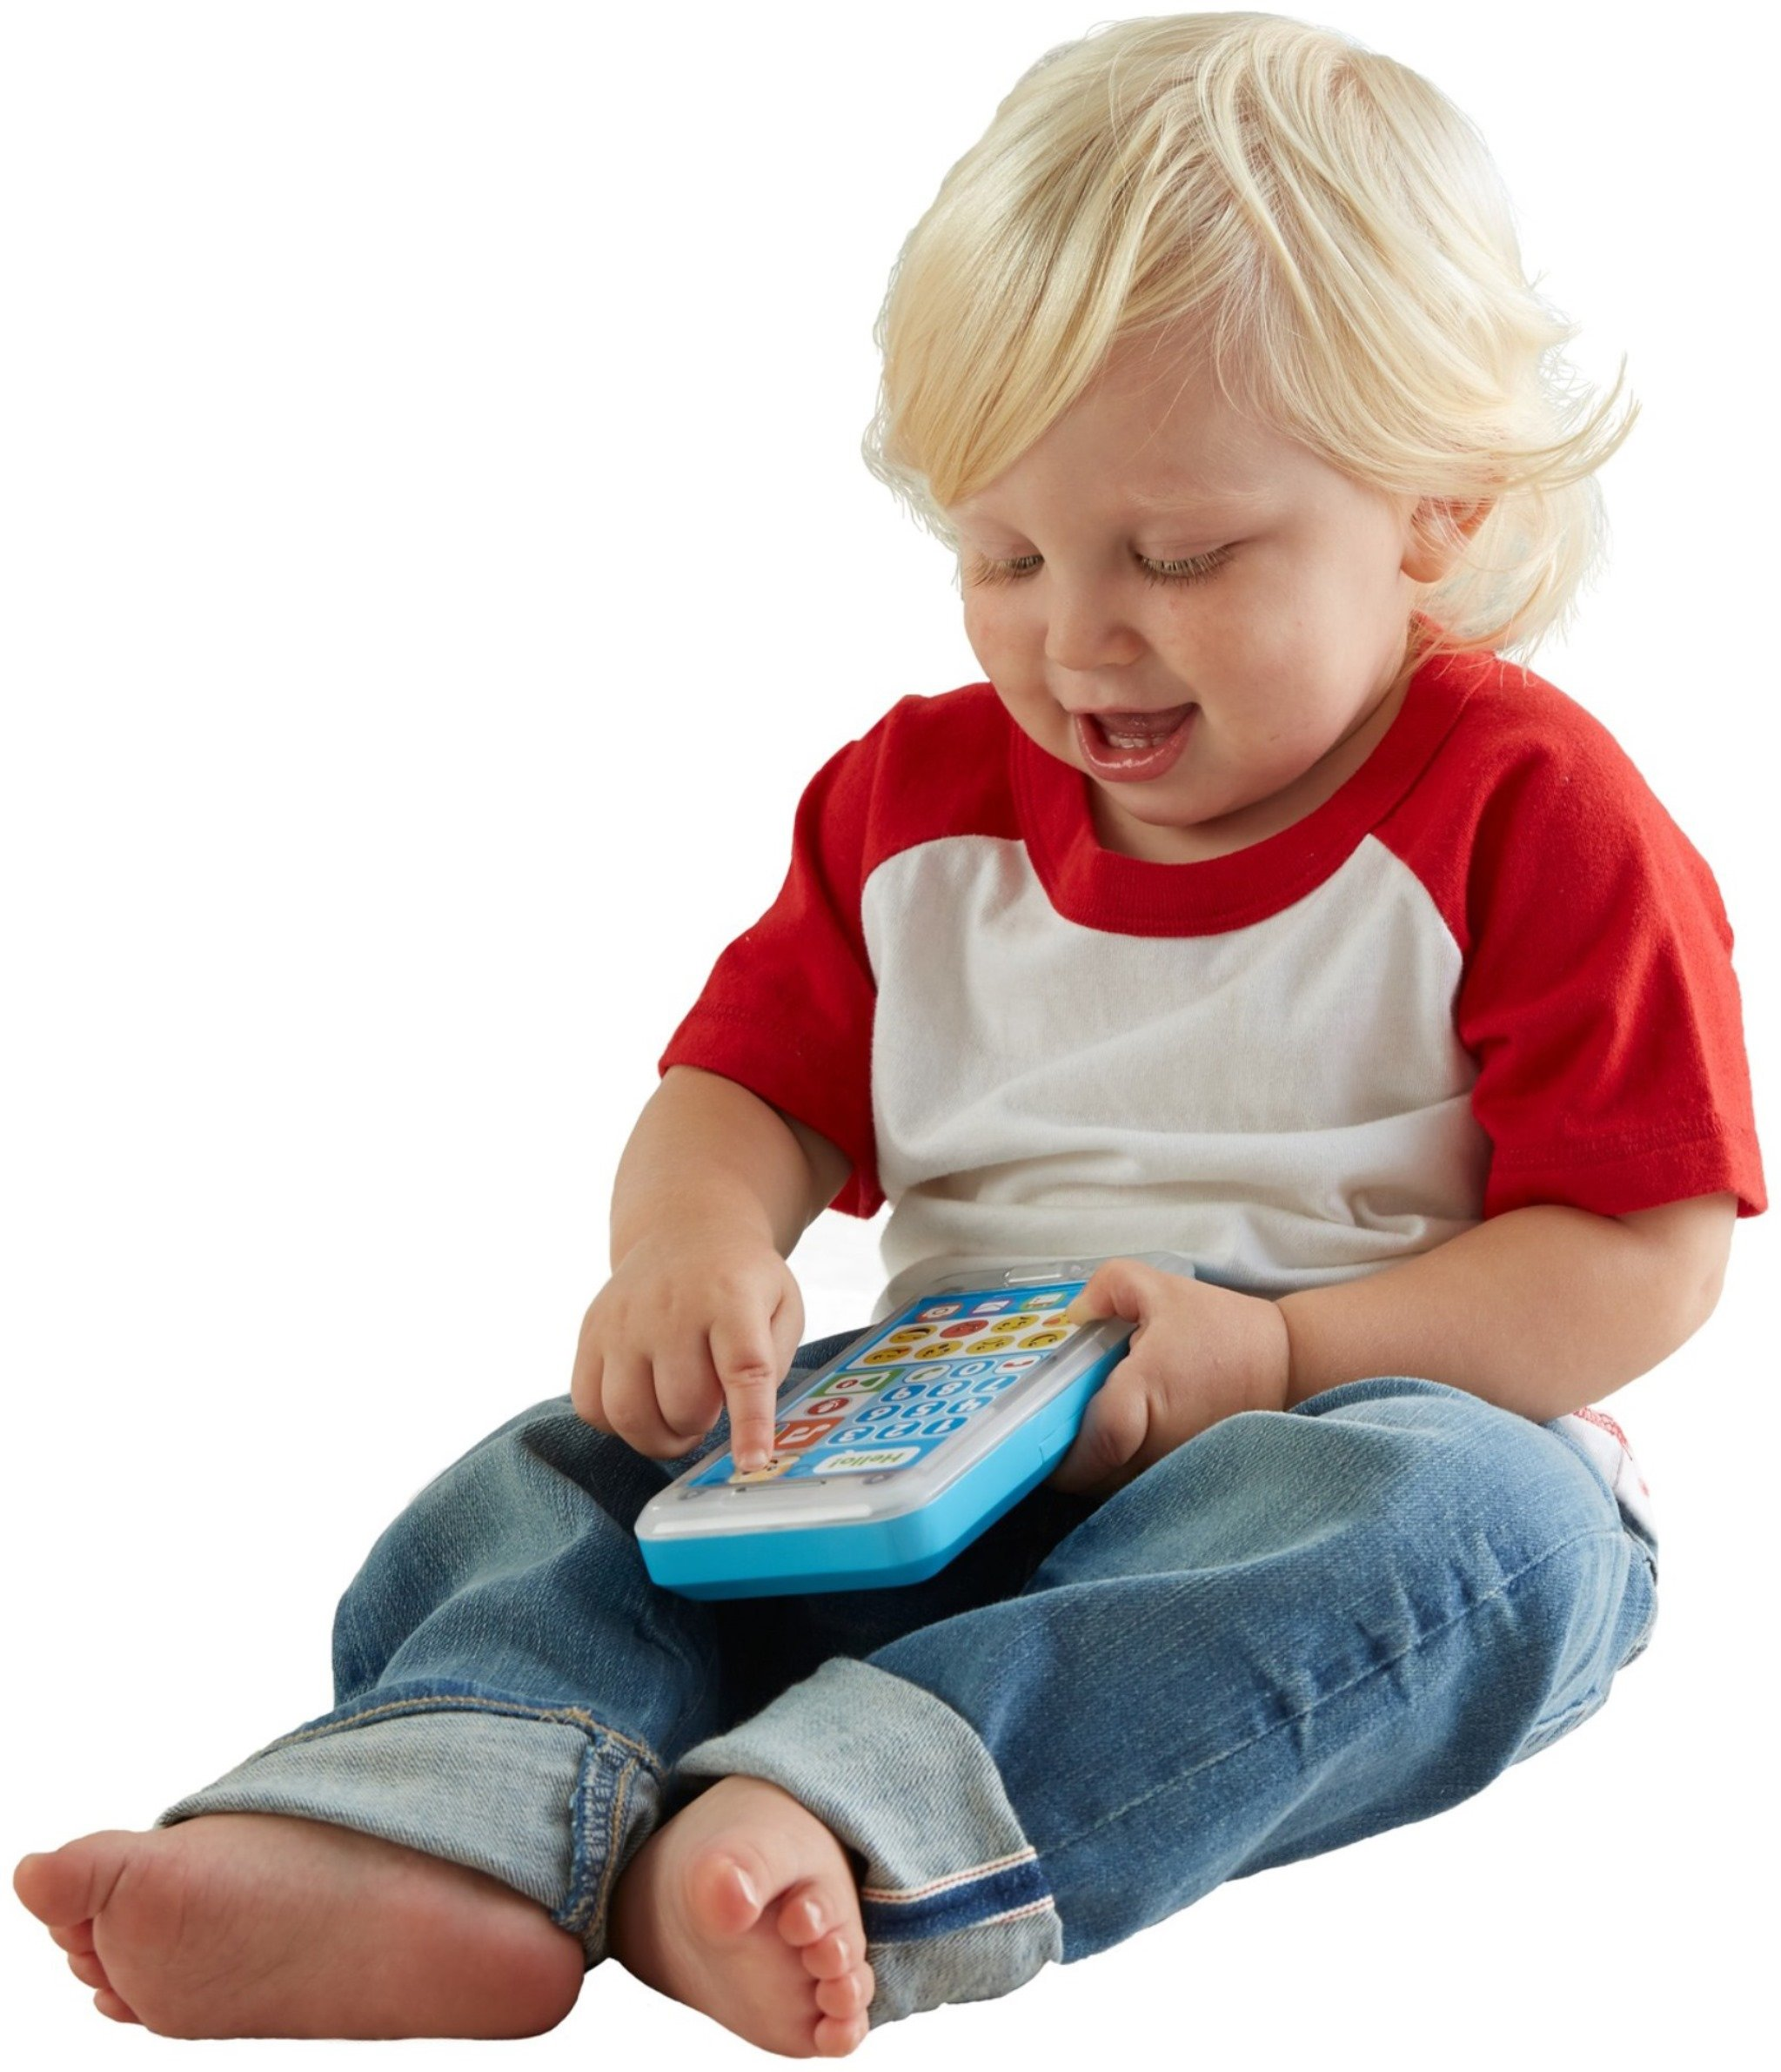 Fisher-Price Laugh & Learn Leave A Message Smart Phone, Puppy by Fisher-Price (Image #2)